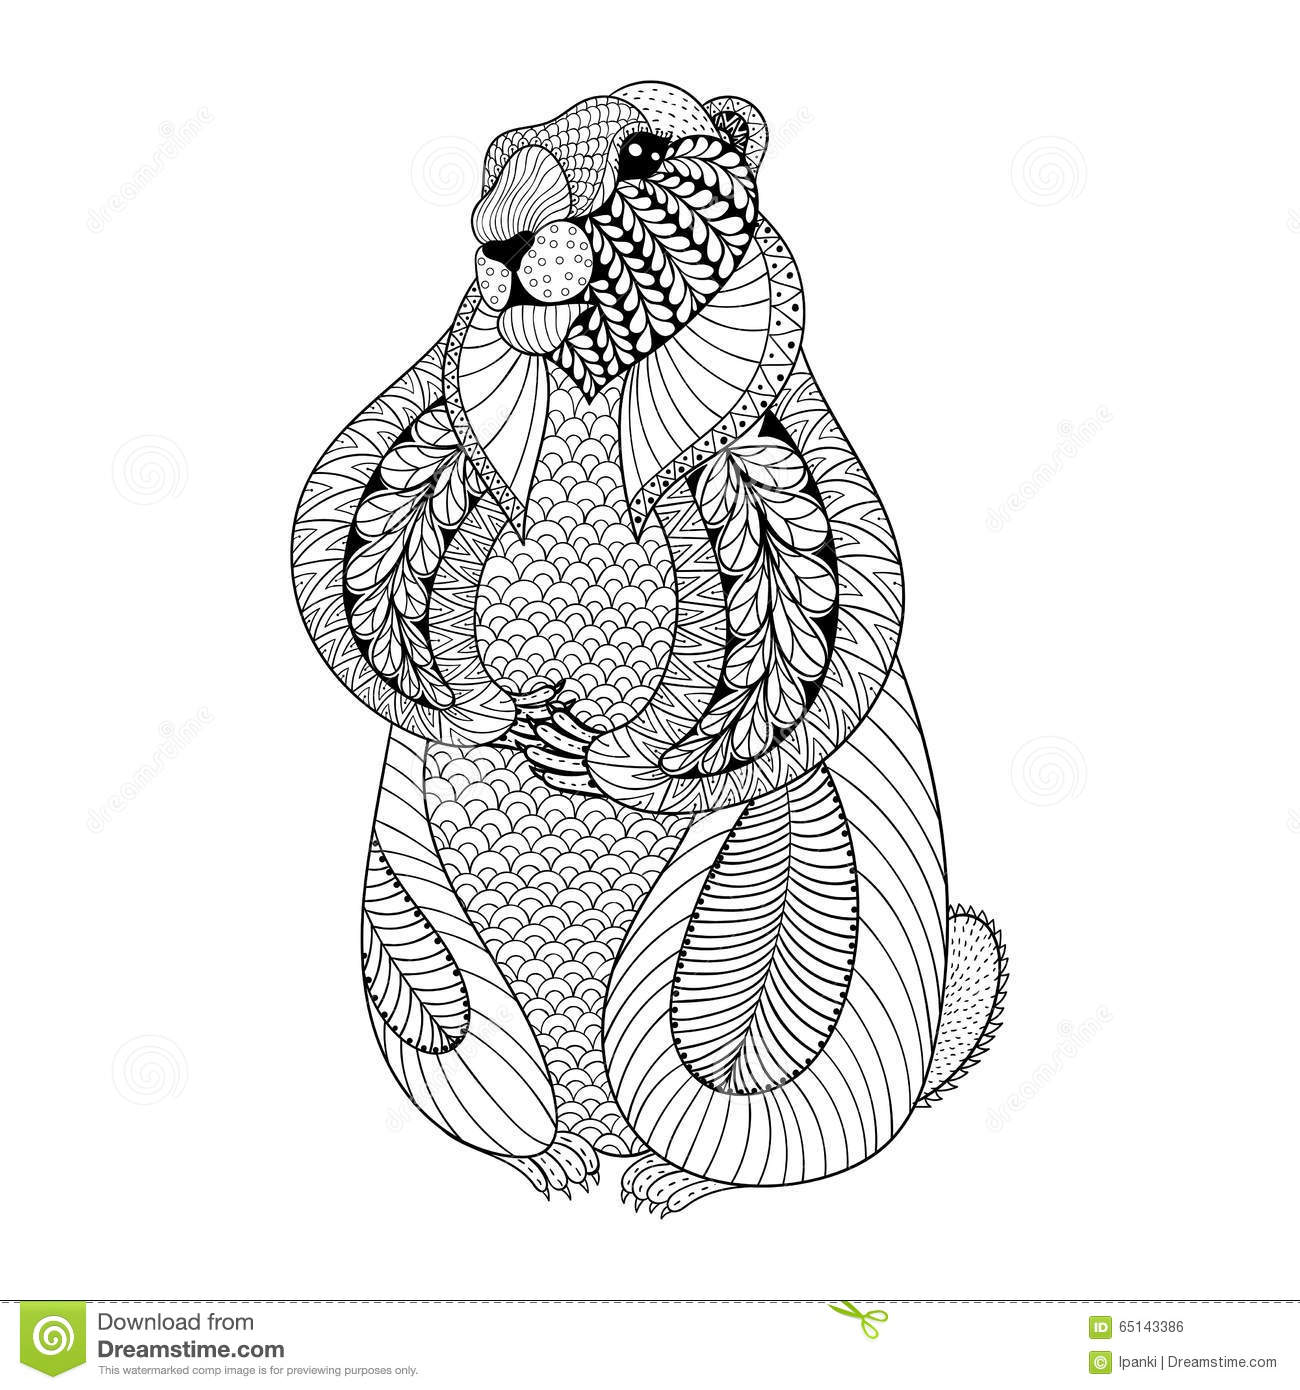 Hand Drawn Groundhog For Adult Coloring Pages In Doodle